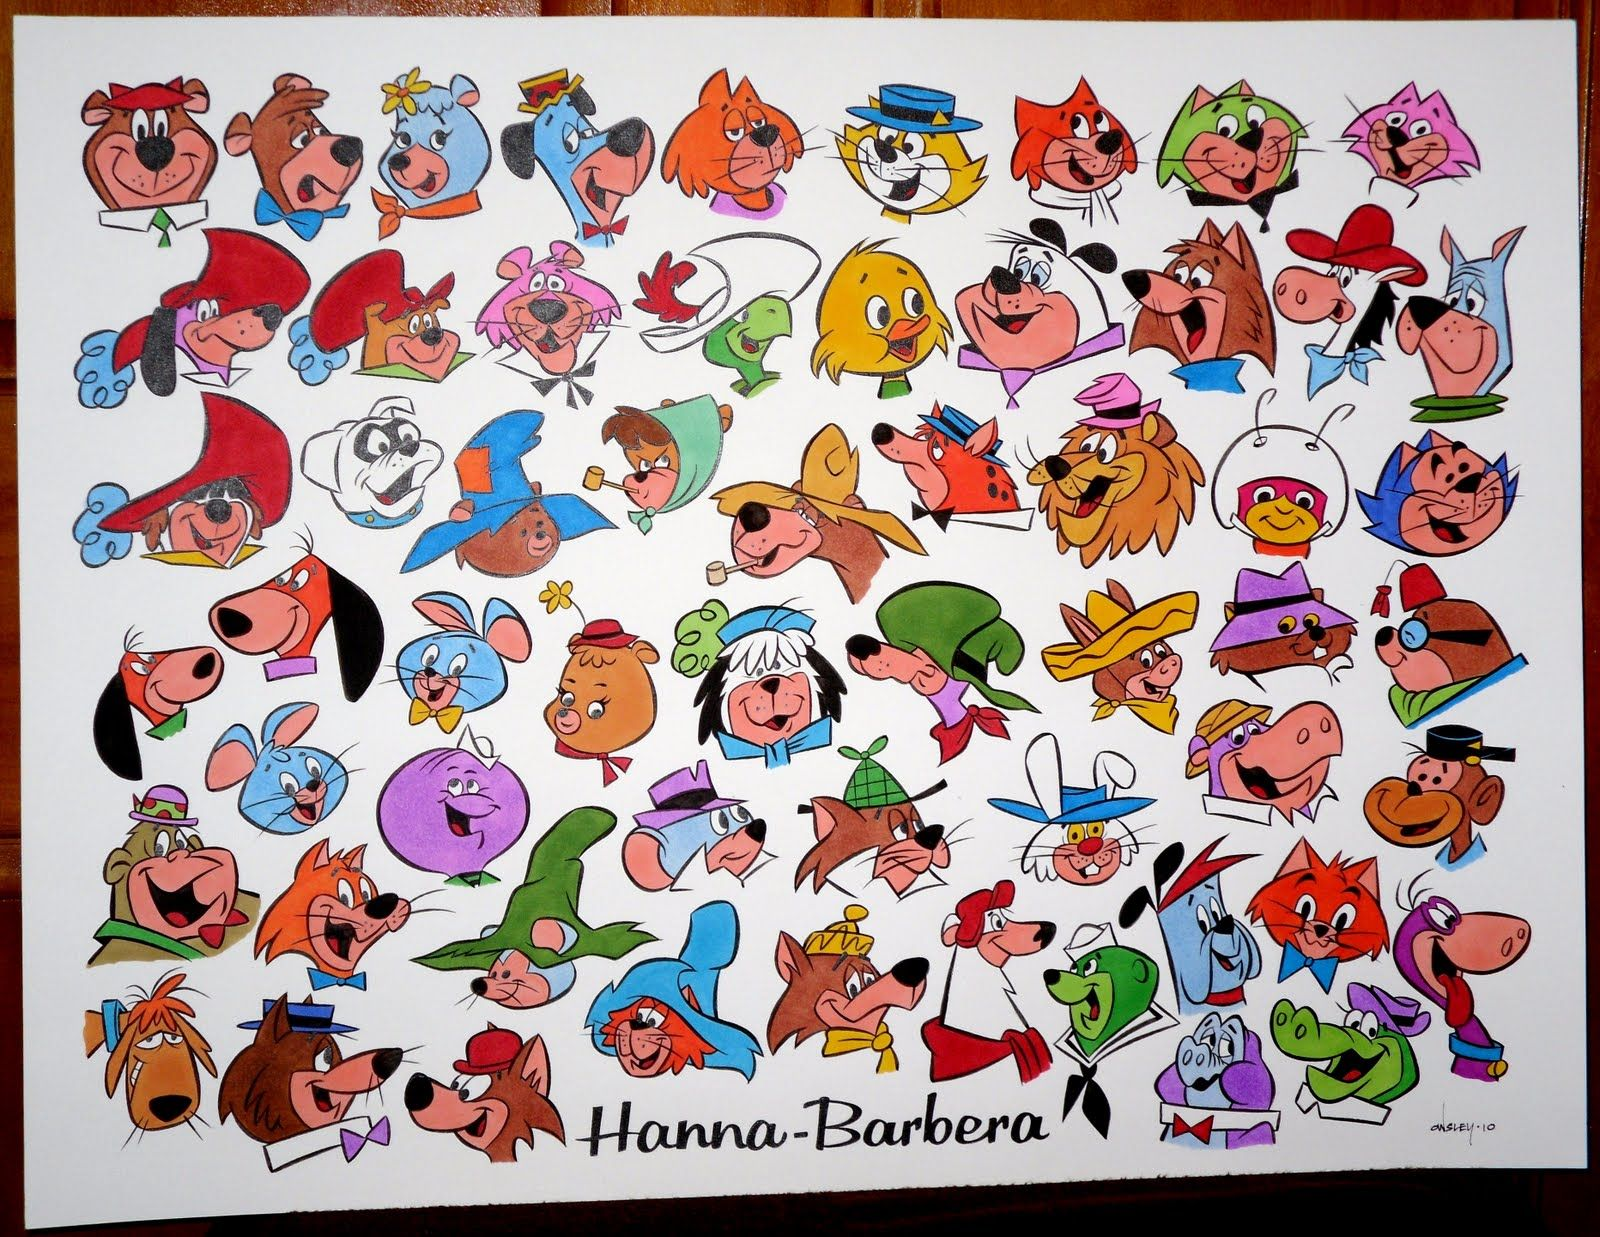 Cartoon Characters 1960s 1970s : Hanna barbera cartoons s clasicos animados de